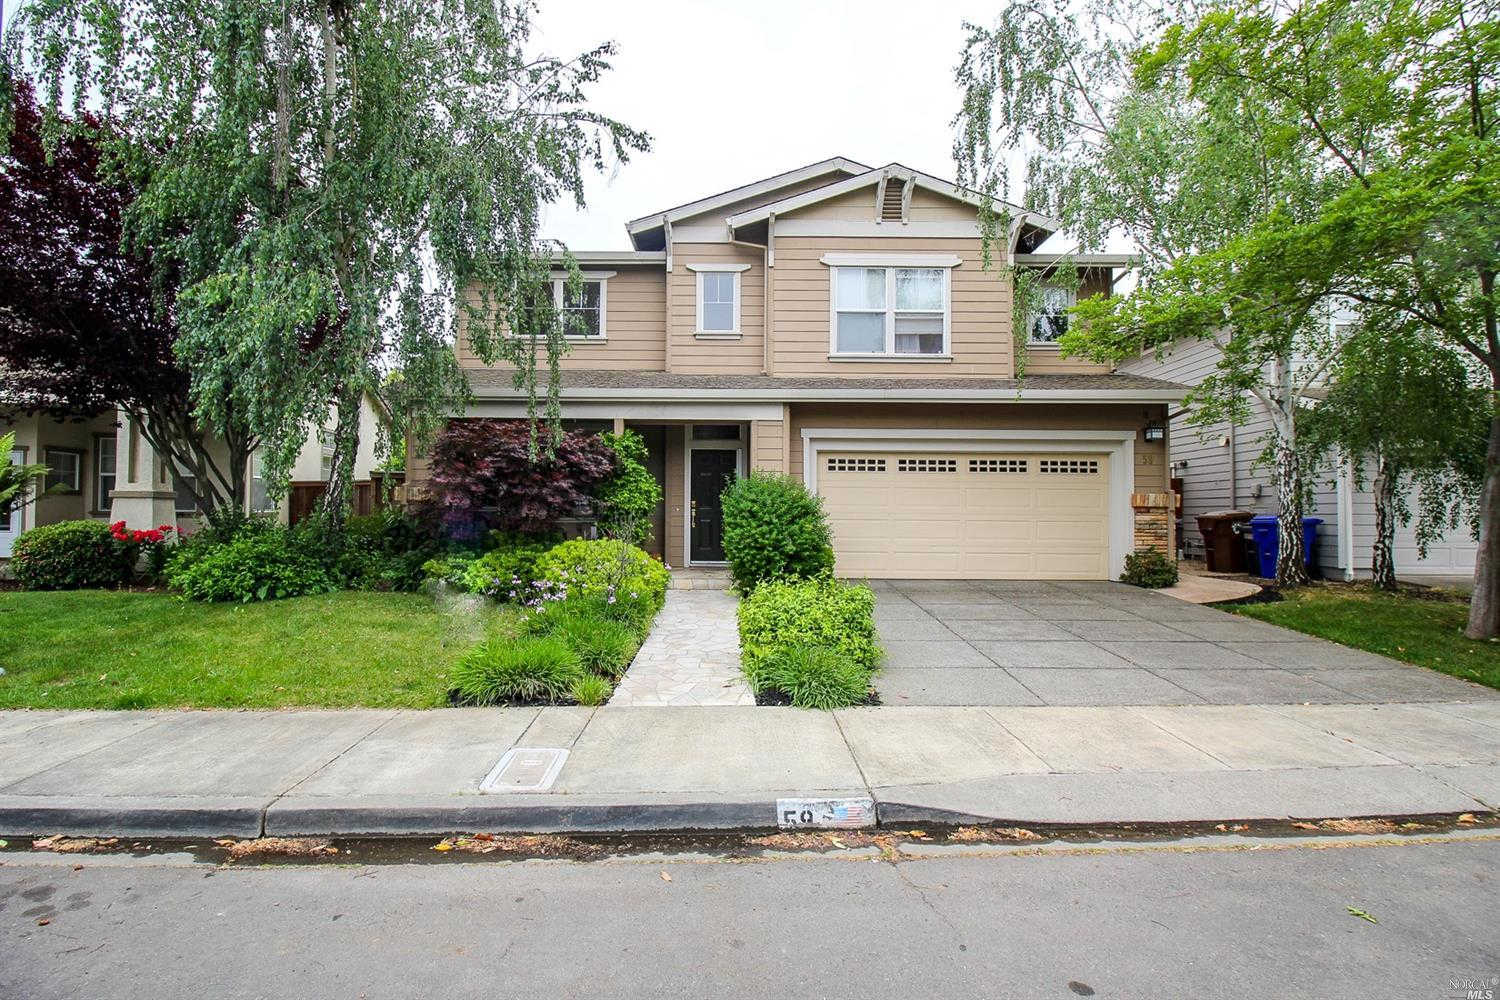 59 Summerbrooke Circle, Napa, CA 94558 has an Open House on  Sunday, June 23, 2019 1:00 PM to 3:00 PM